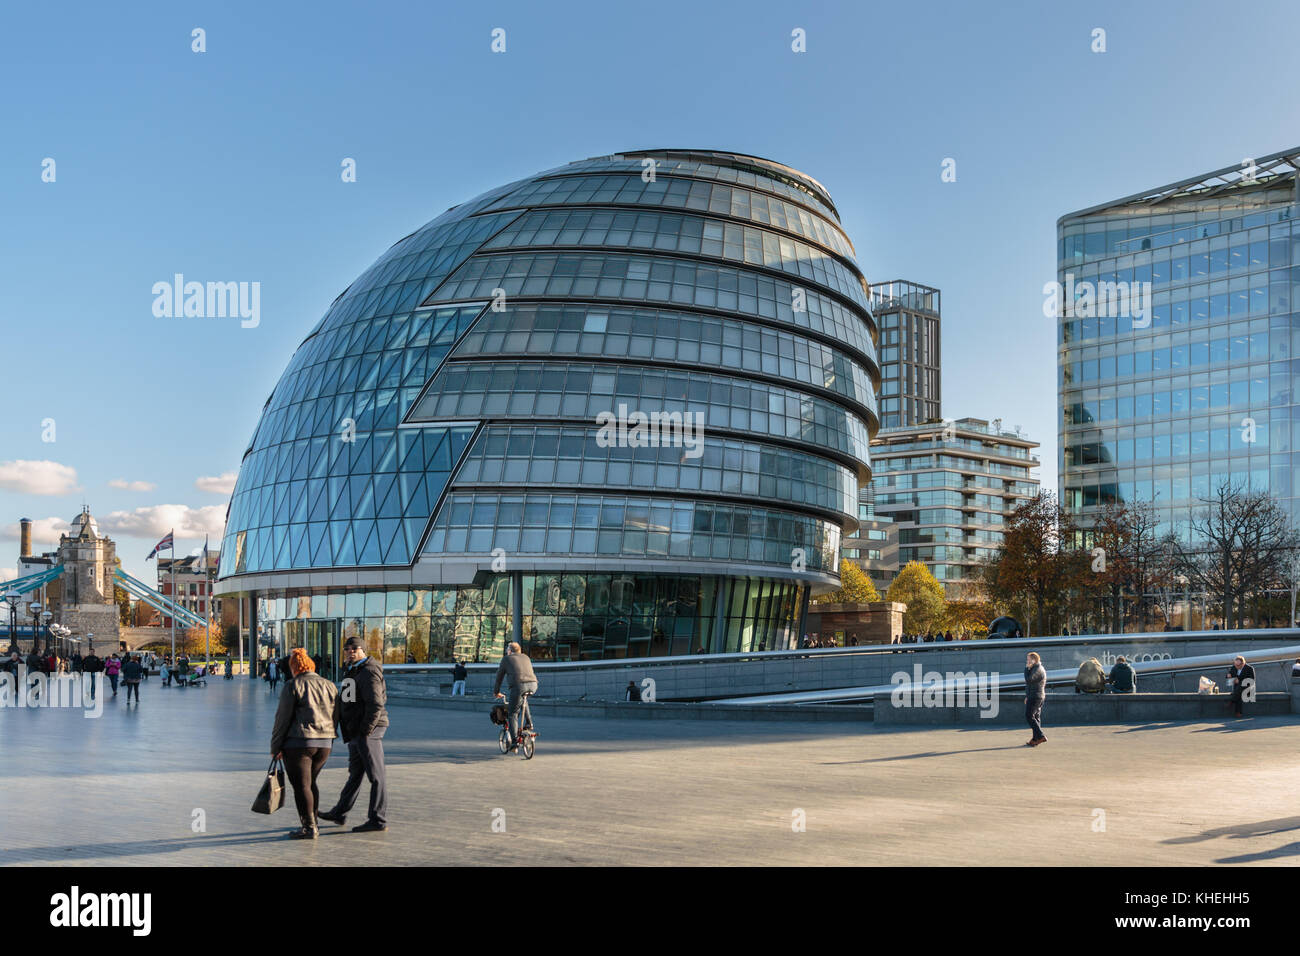 Rathaus, Sitz der Greater London Authority (GLA), der Bürgermeister von London und der London Assembly, Southwark, Stockbild